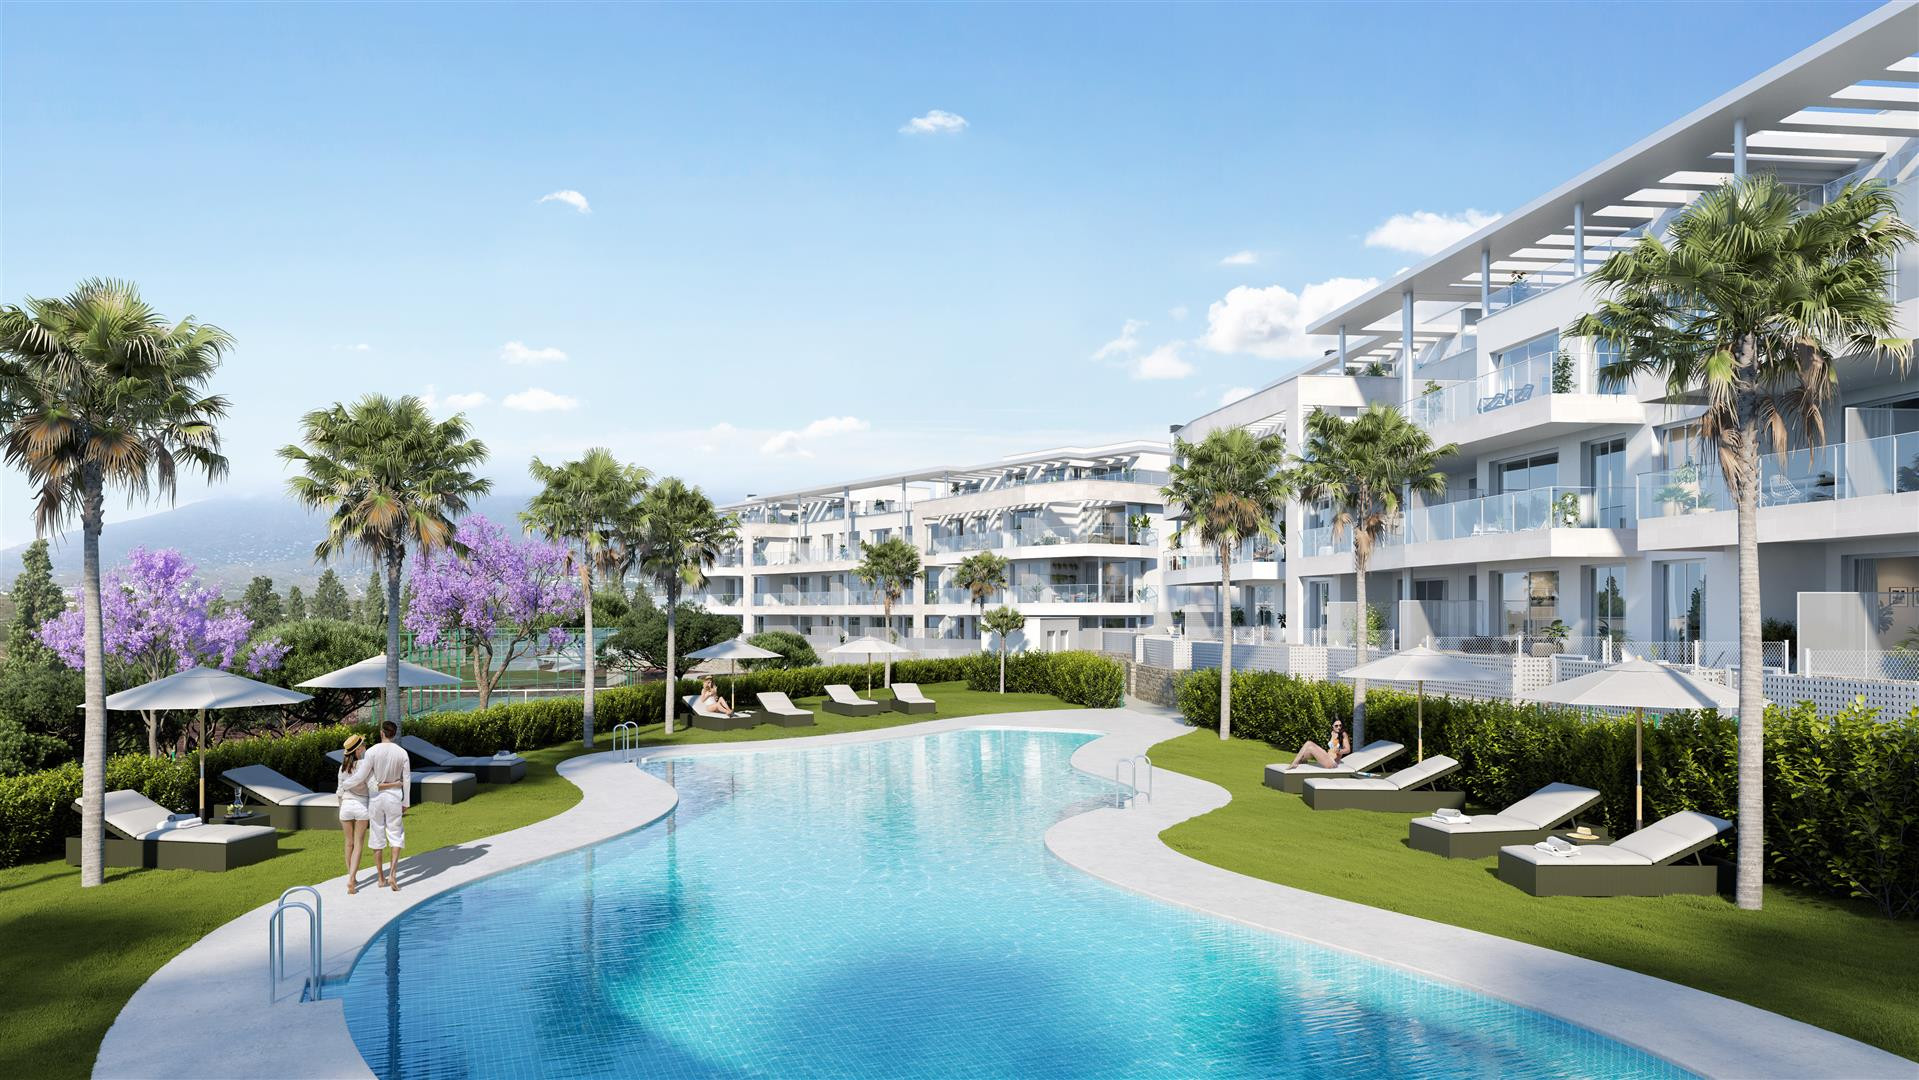 New exclusive and modern apartments for sale in Mijas Costa